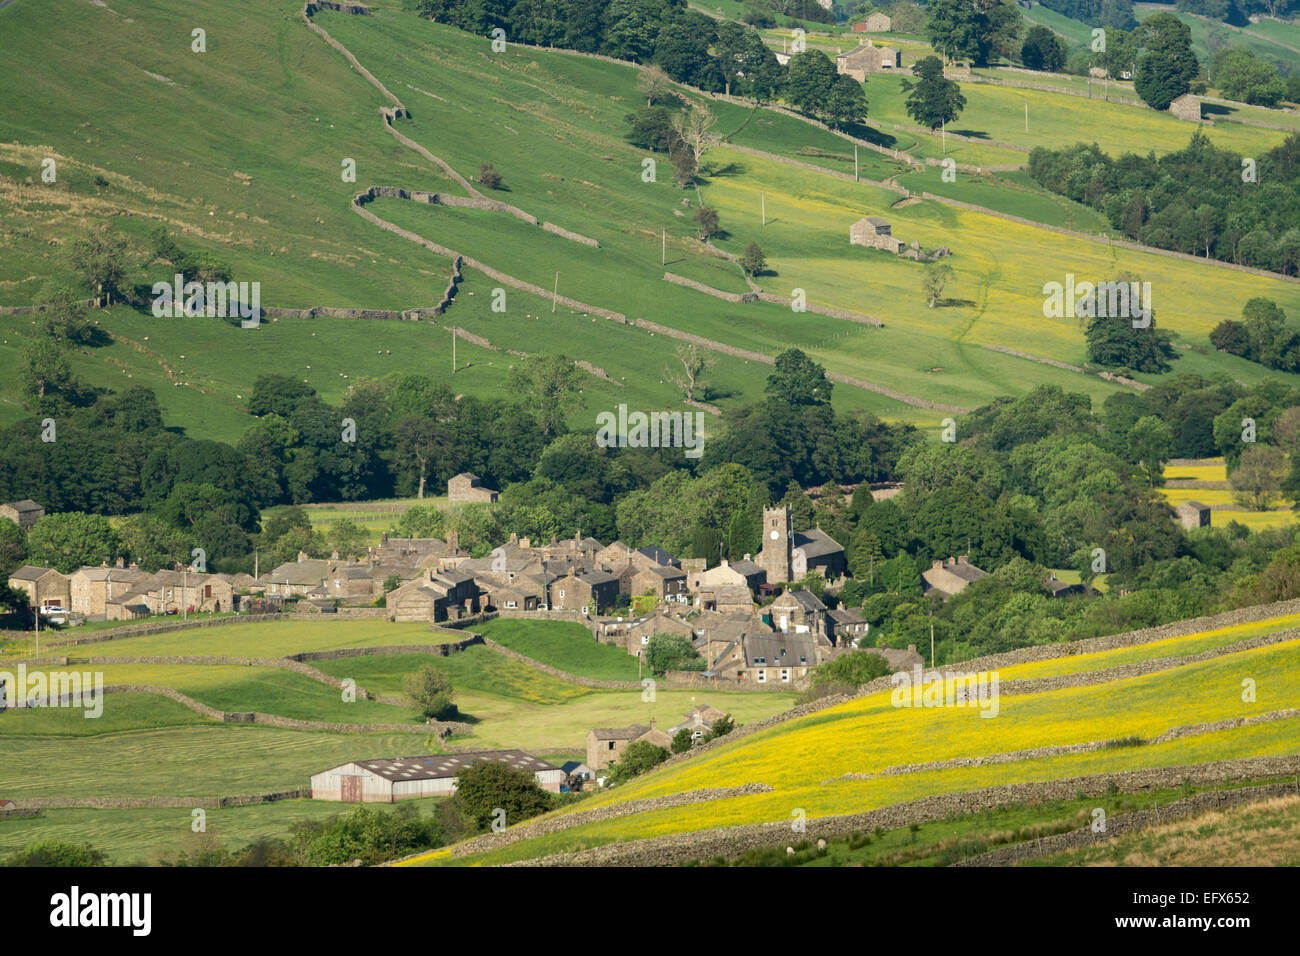 Village of Muker in Swaledale, early summer. Yorkshire Dales National Park, UK - Stock Image